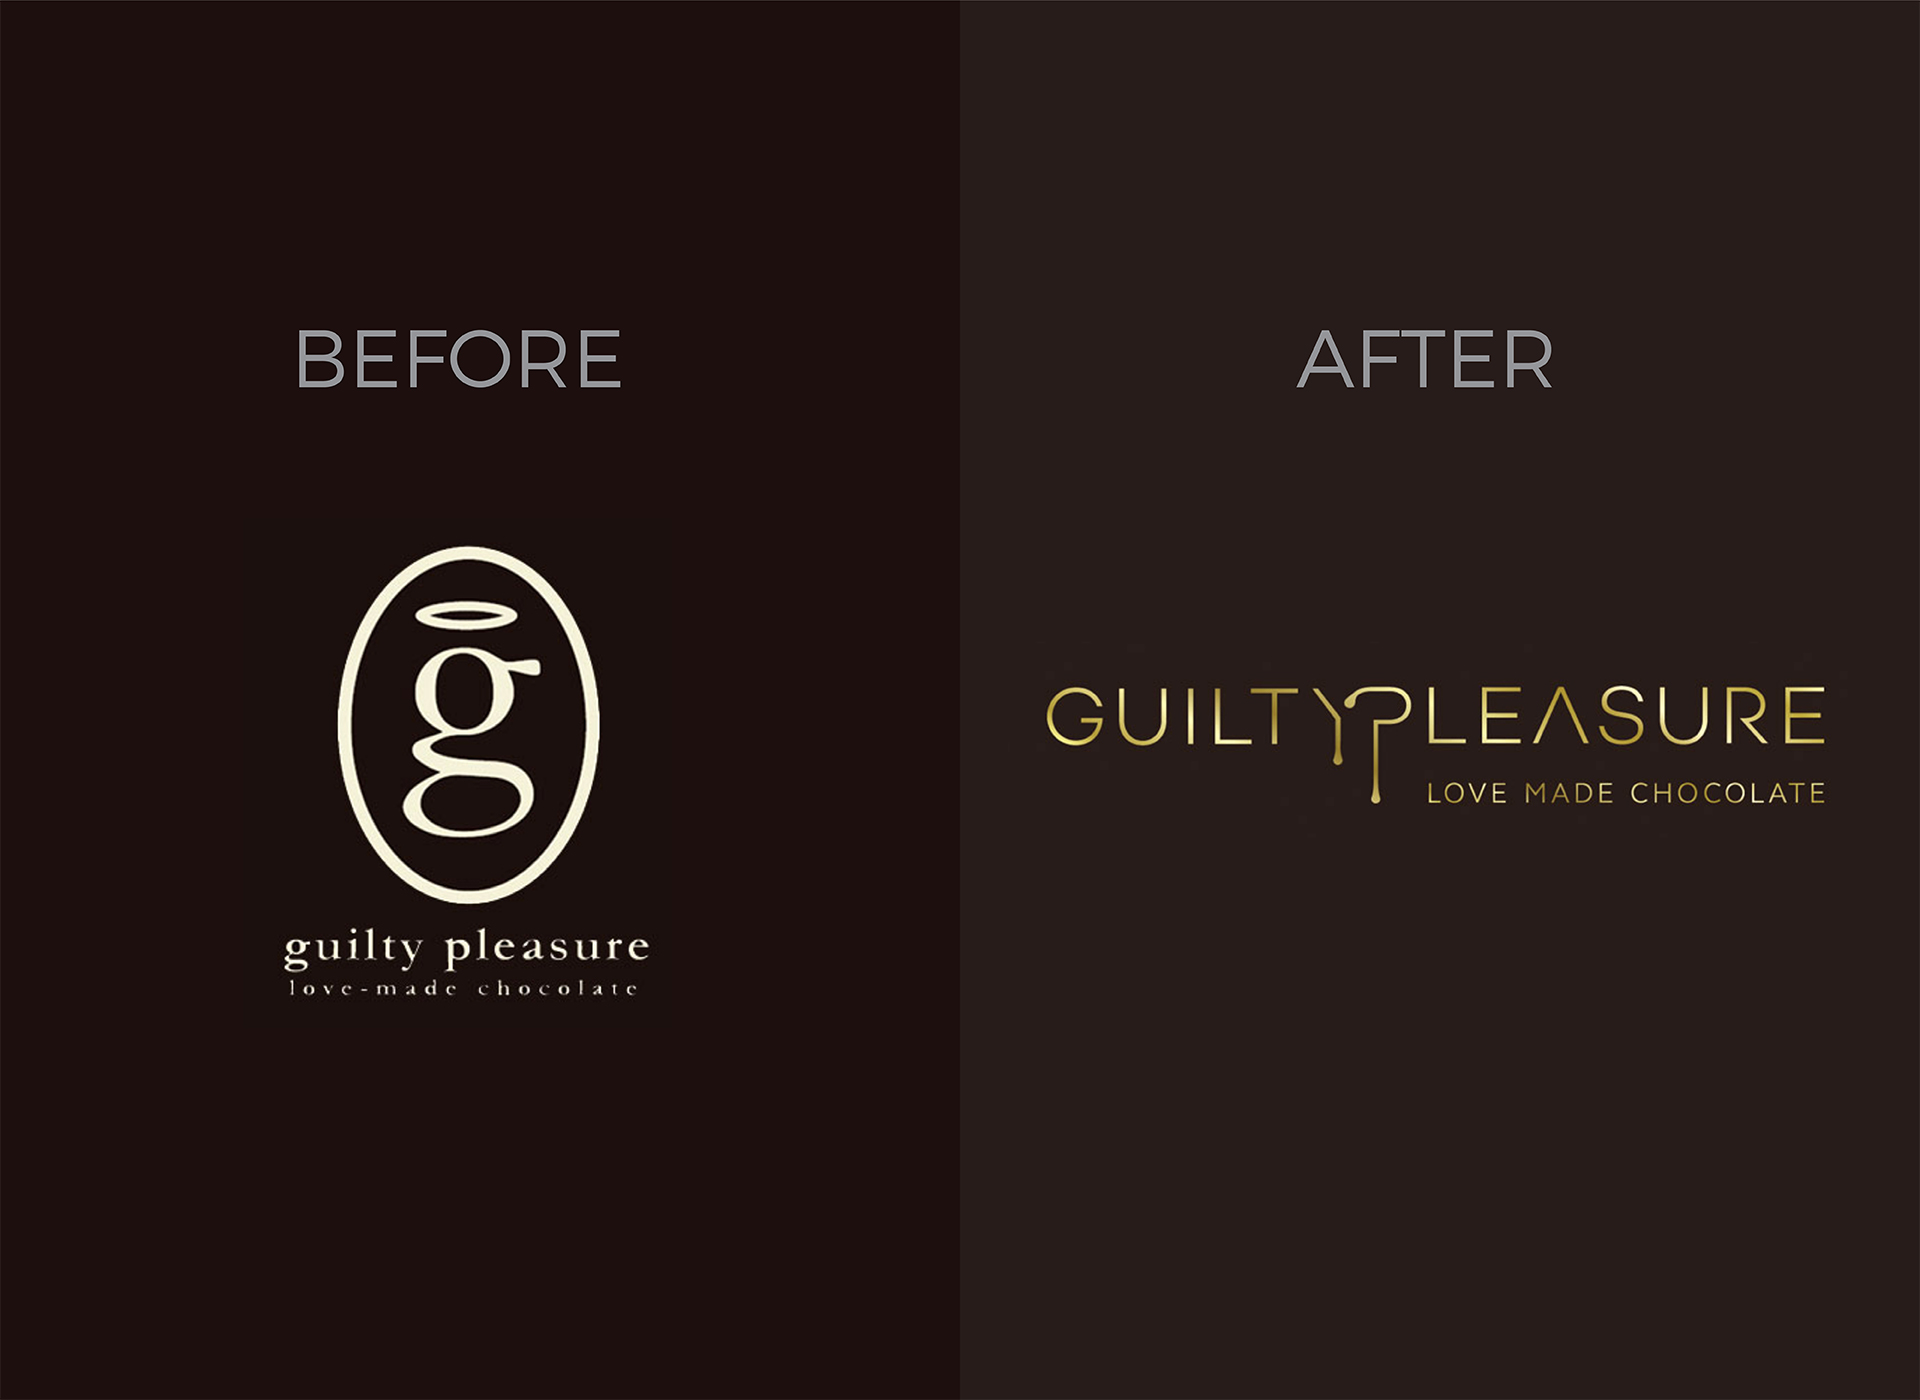 guilty pleasure architects rebranding logo before and after